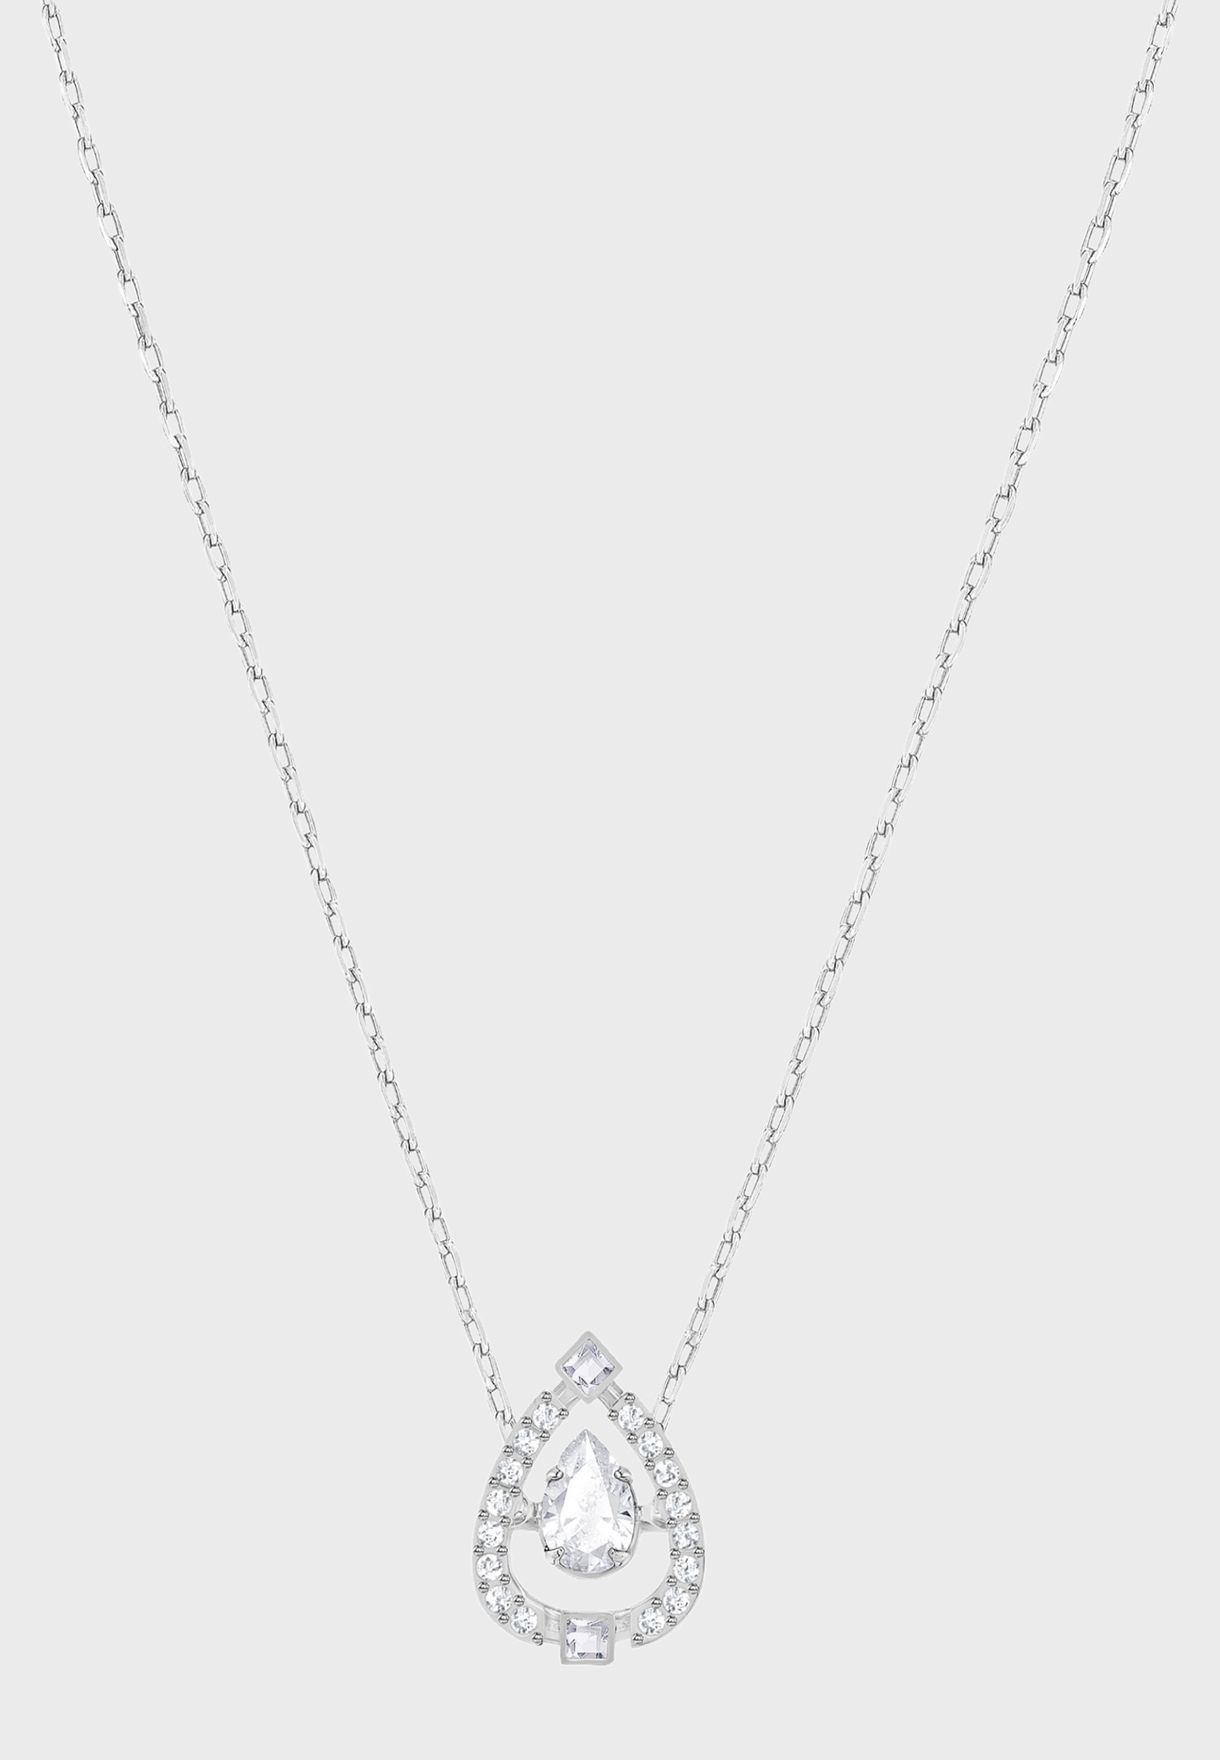 Sparkling Dc Pear Necklace With Pendant